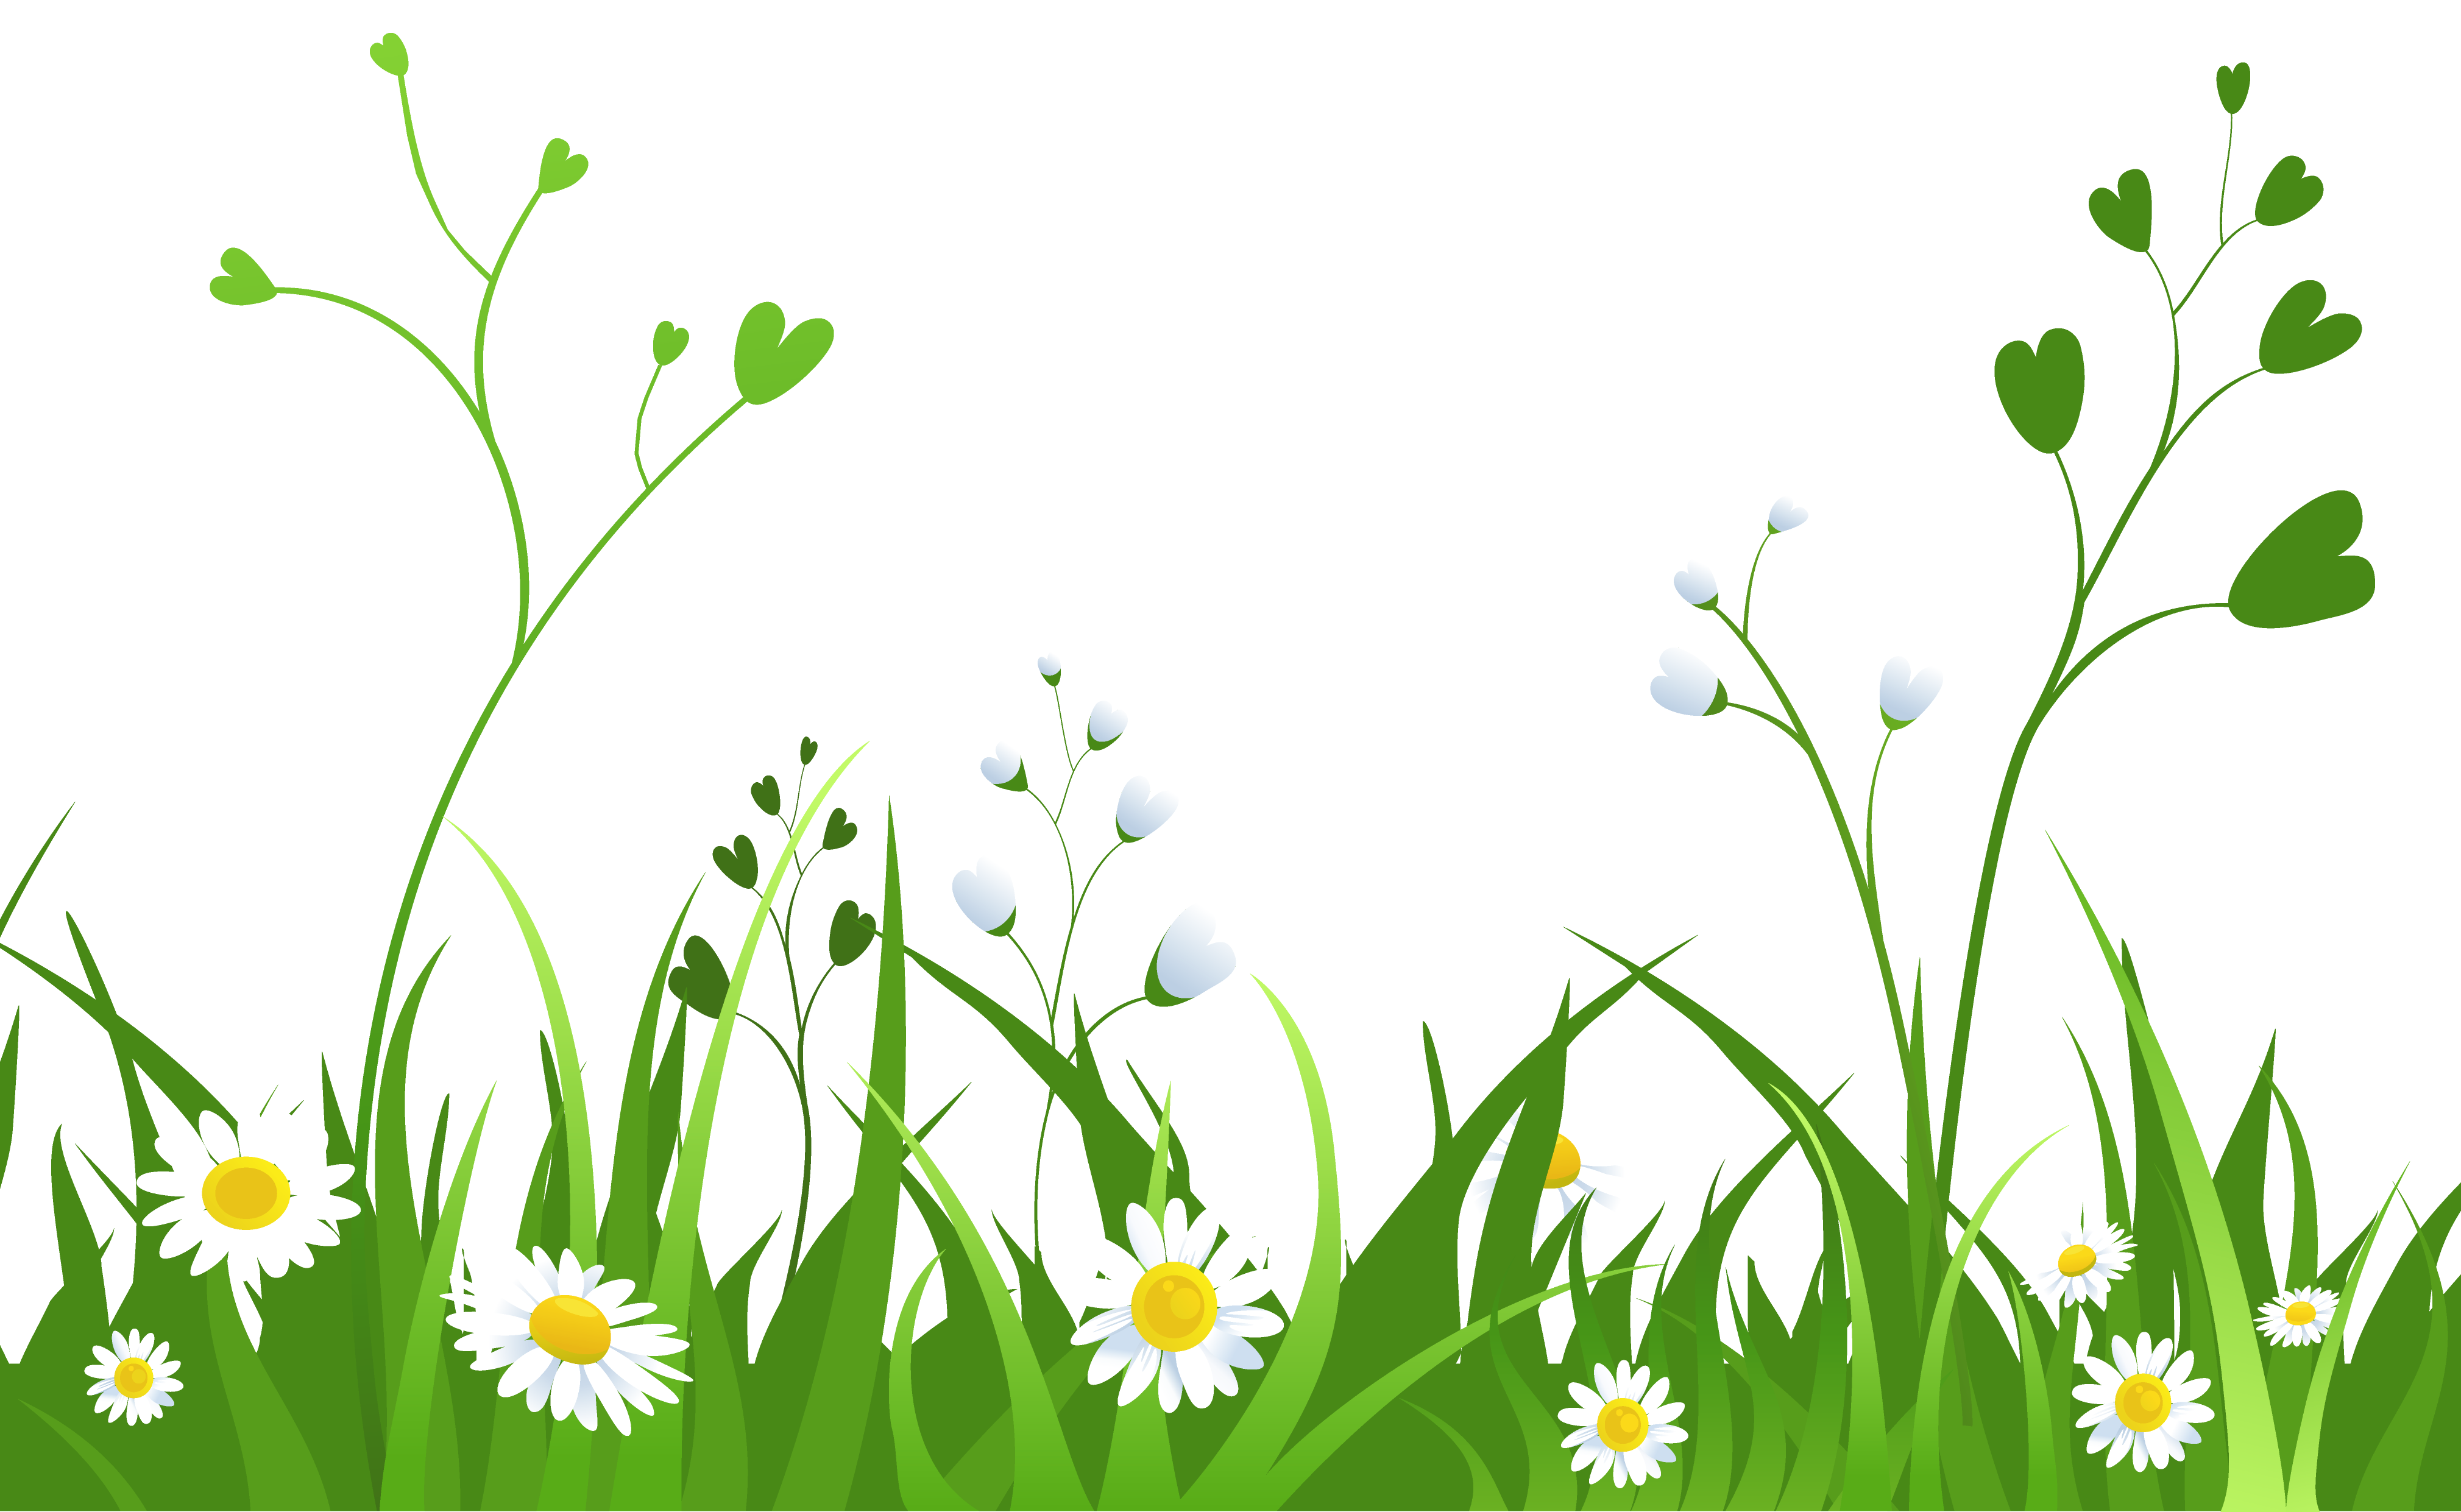 Outside clipart nature. Grass outline border free